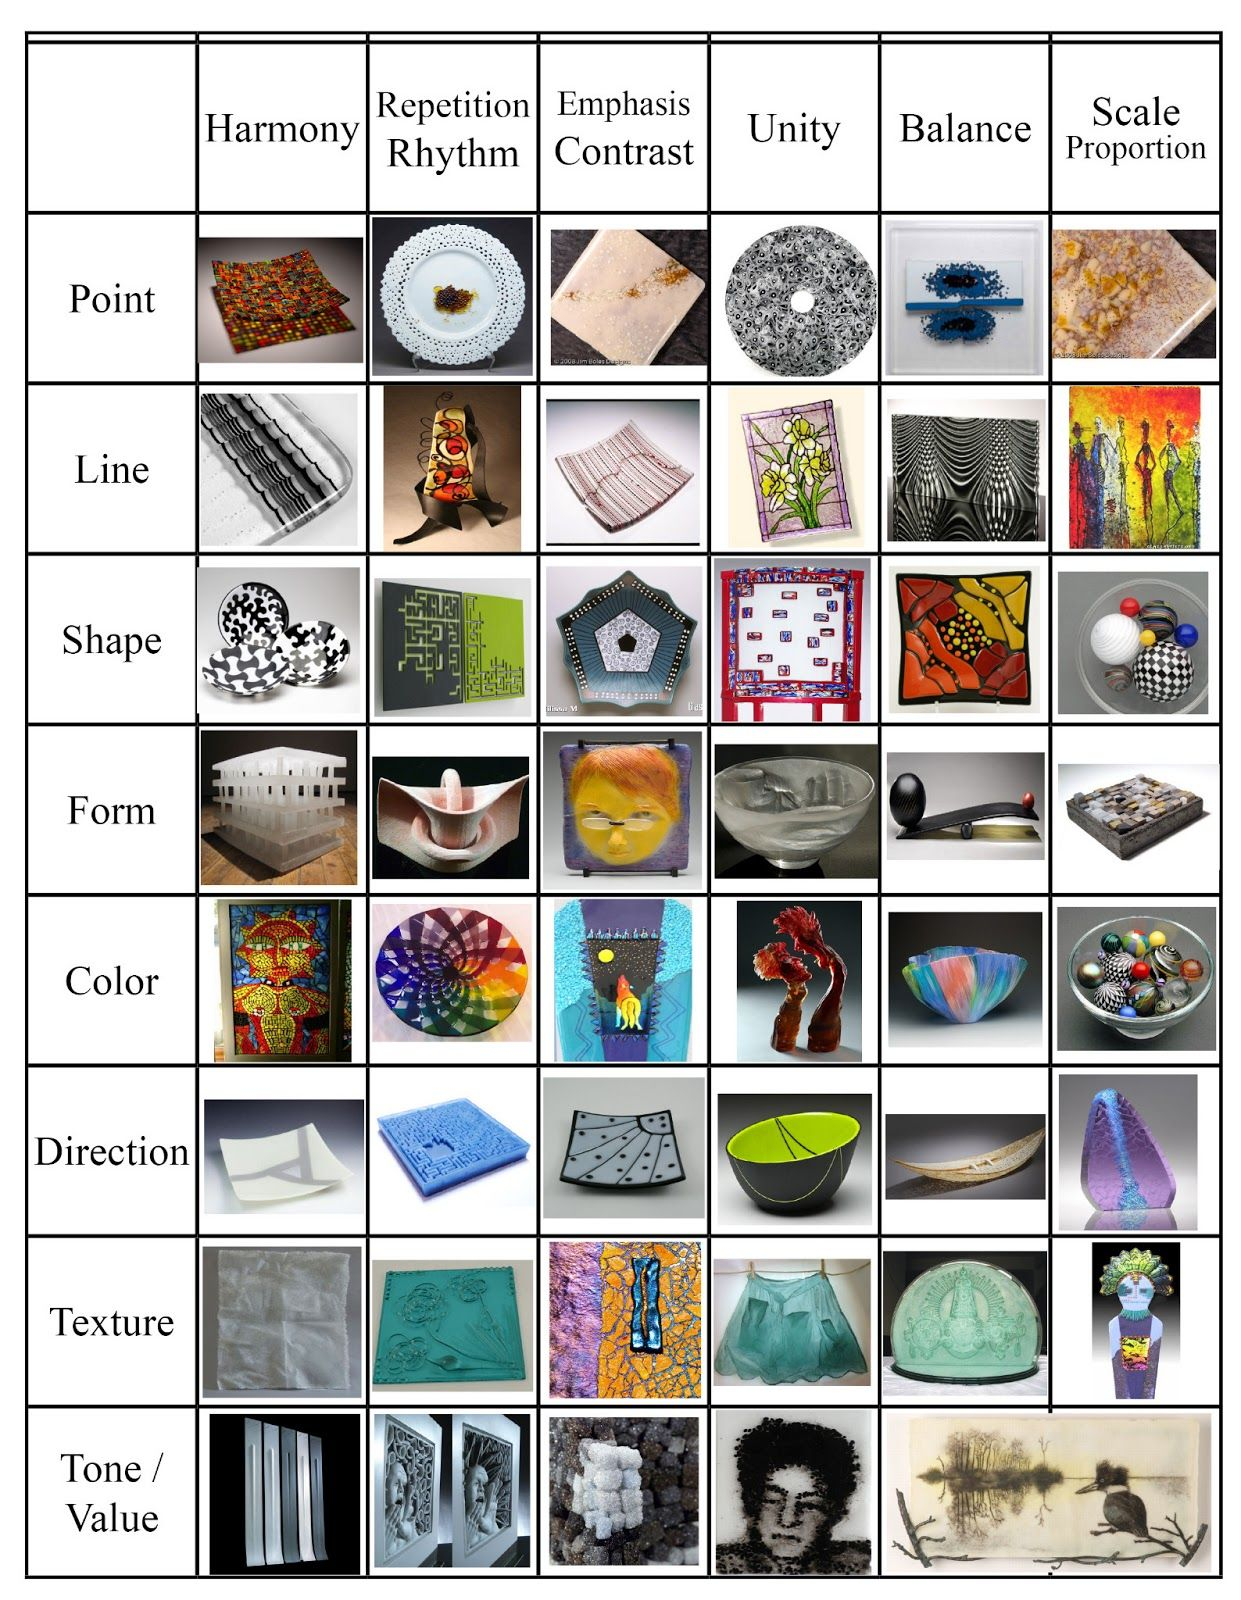 Elements Amp Principles Of Design In Glass Art Image Making